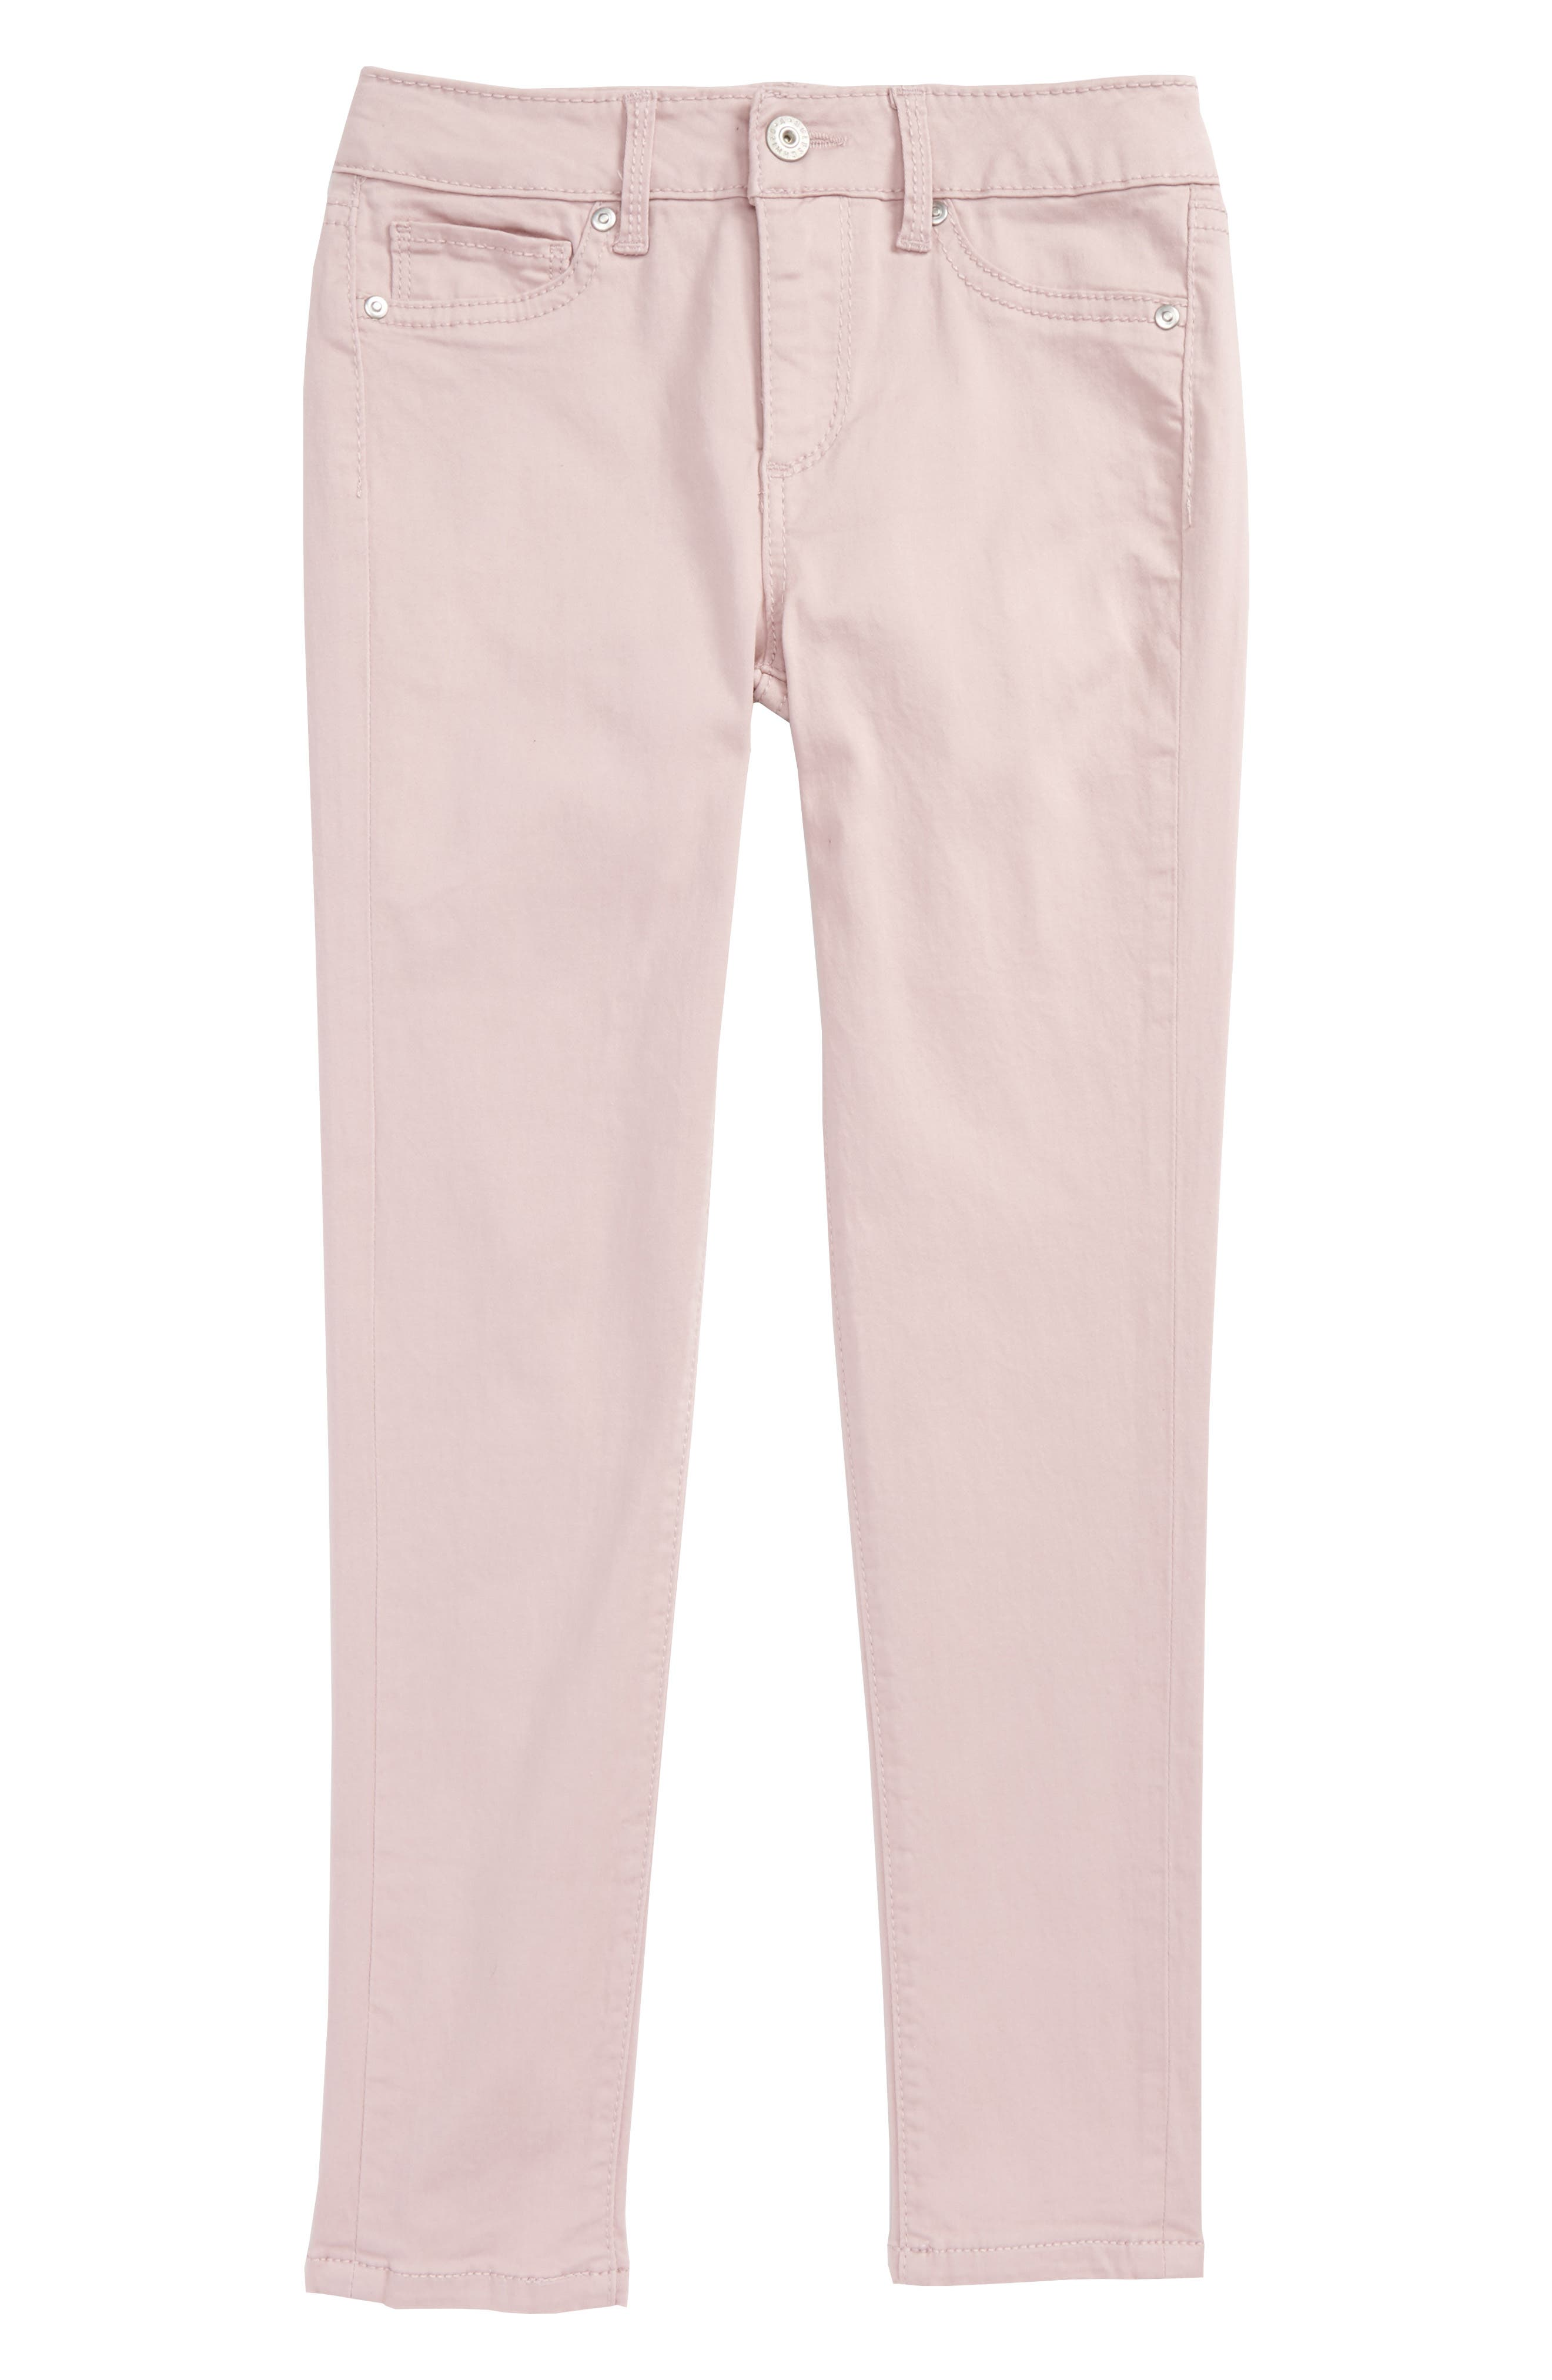 Alternate Image 1 Selected - ag adriano goldschmied kids Twiggy Luxe Ankle Skinny Jeans (Toddler Girls & Little Girls)